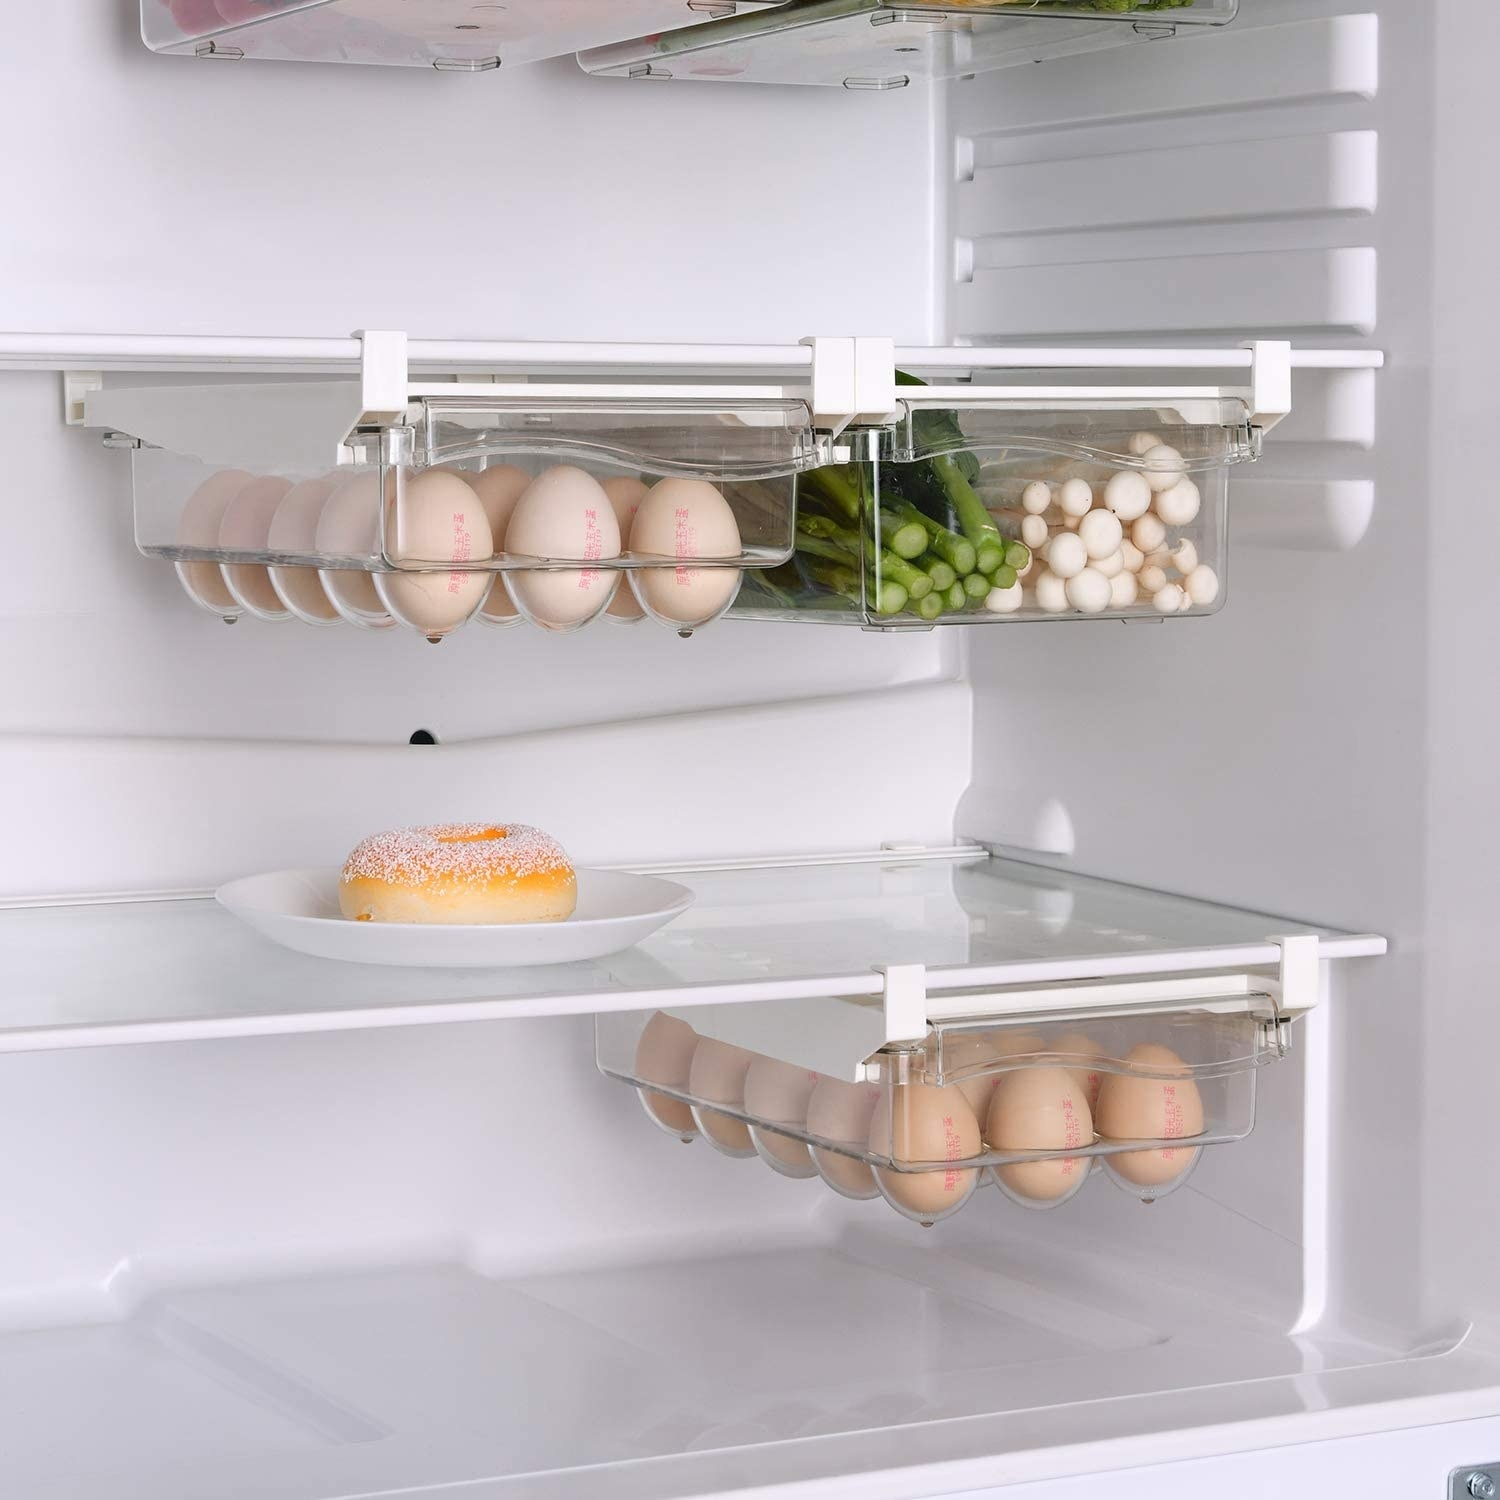 three drawers attached to fridge shelves to hold eggs and other veggies